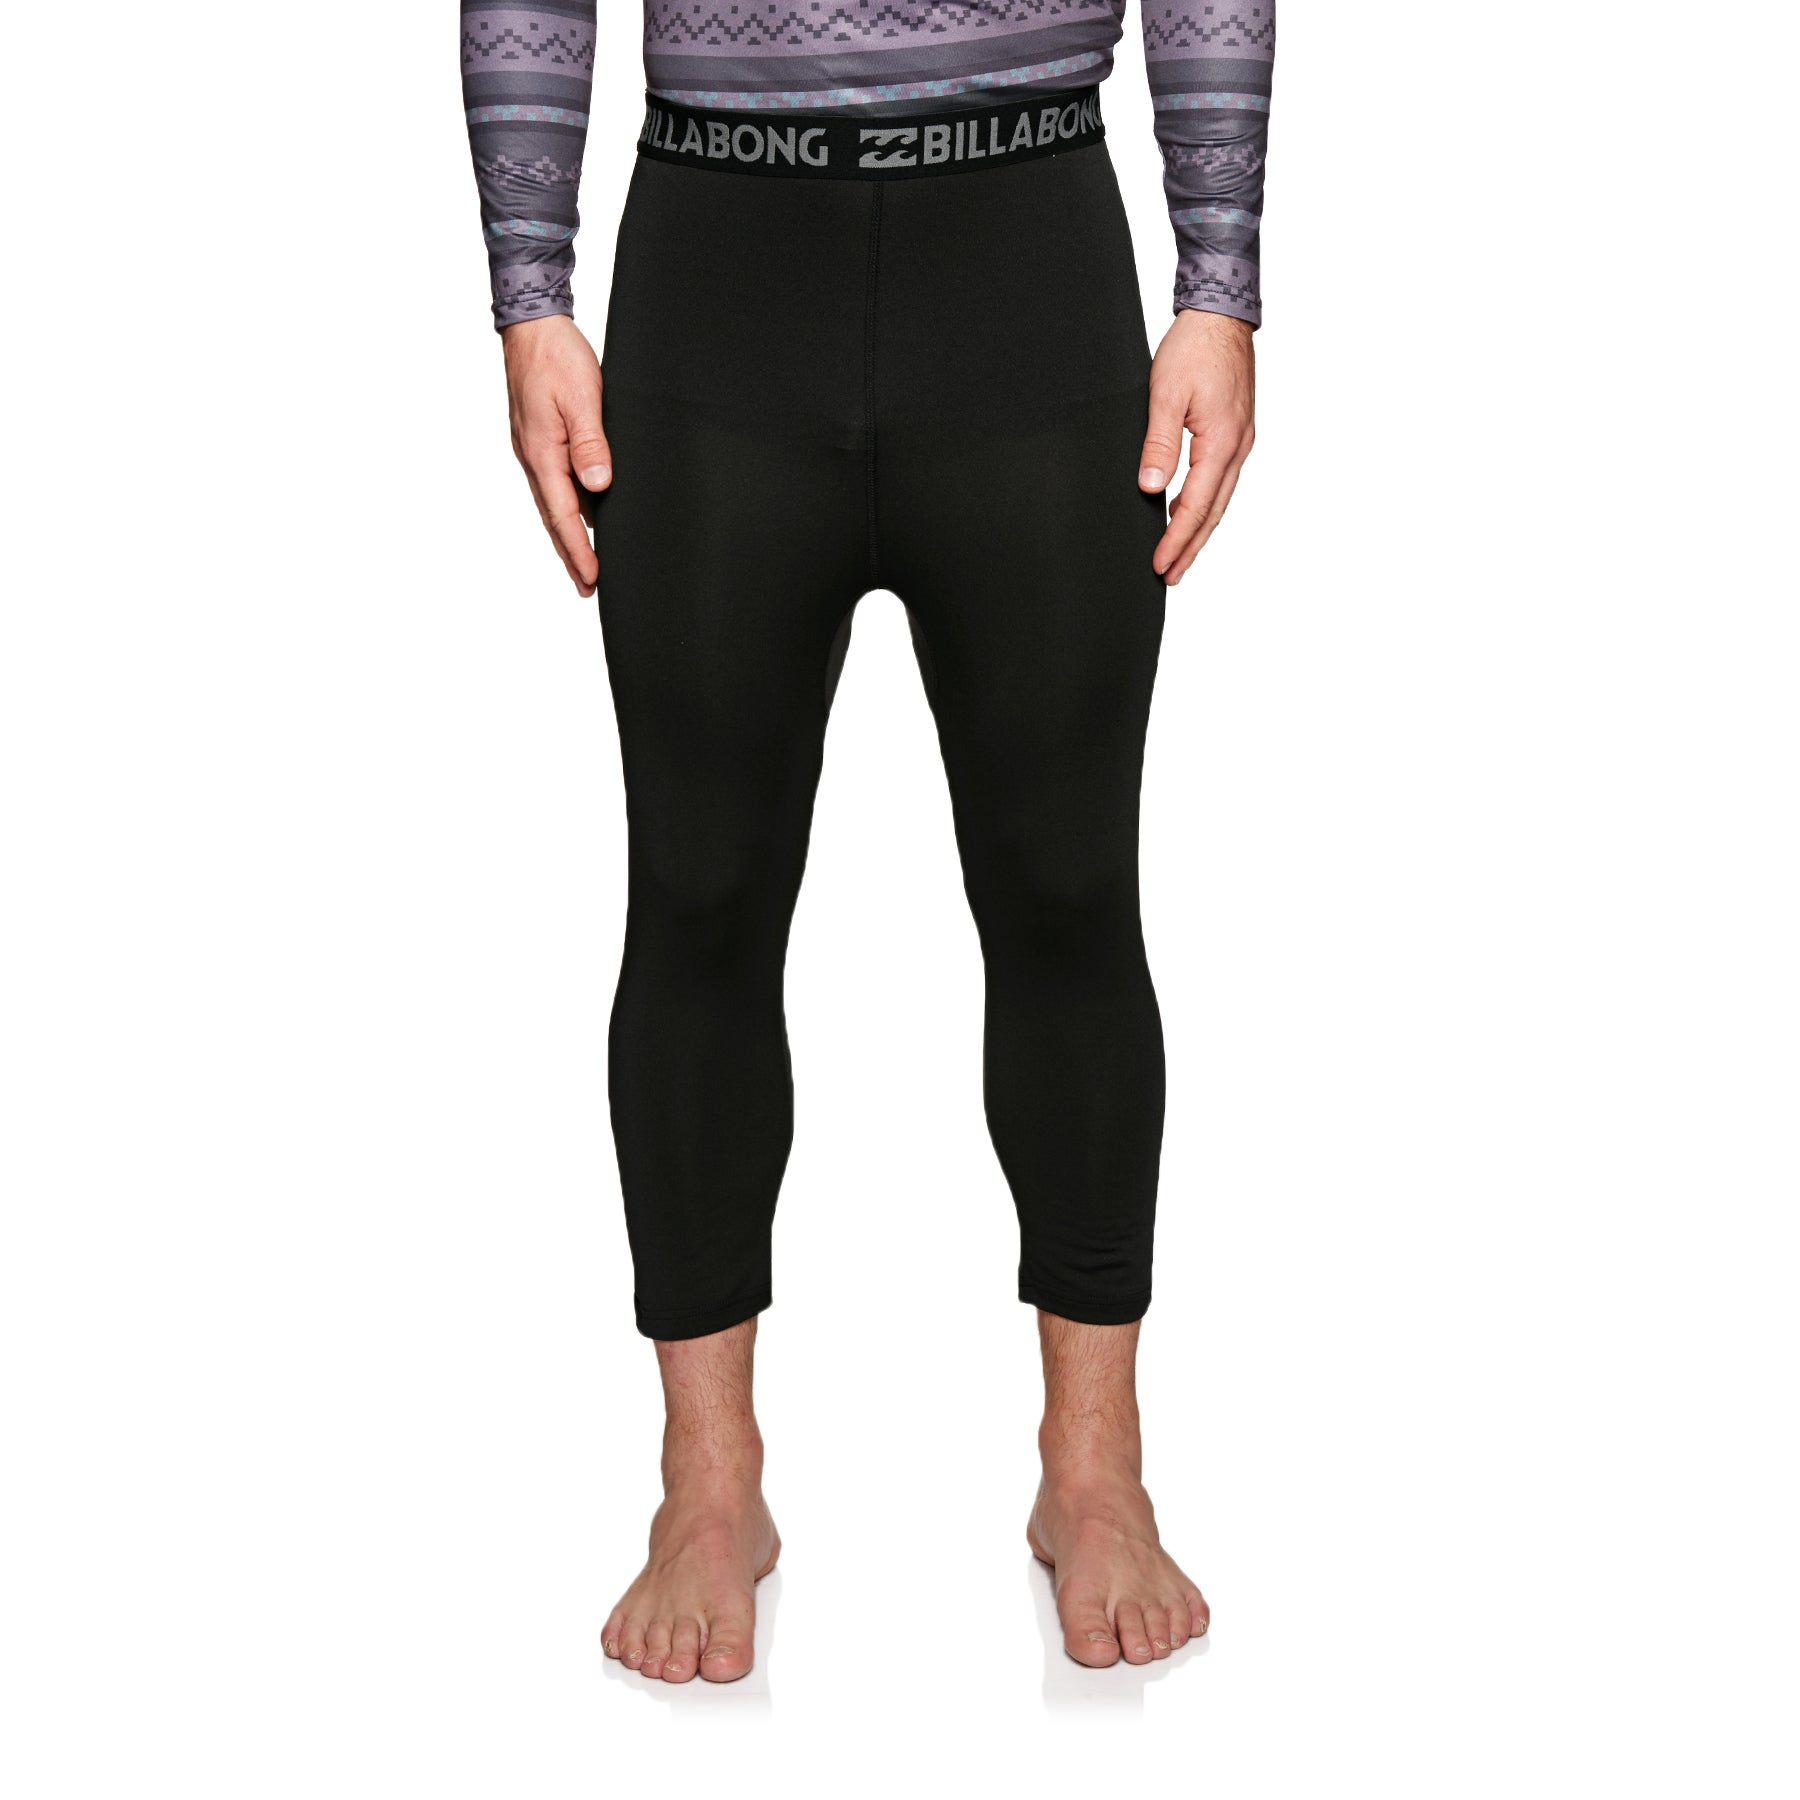 Billabong Operator Base Layer Leggings - Black